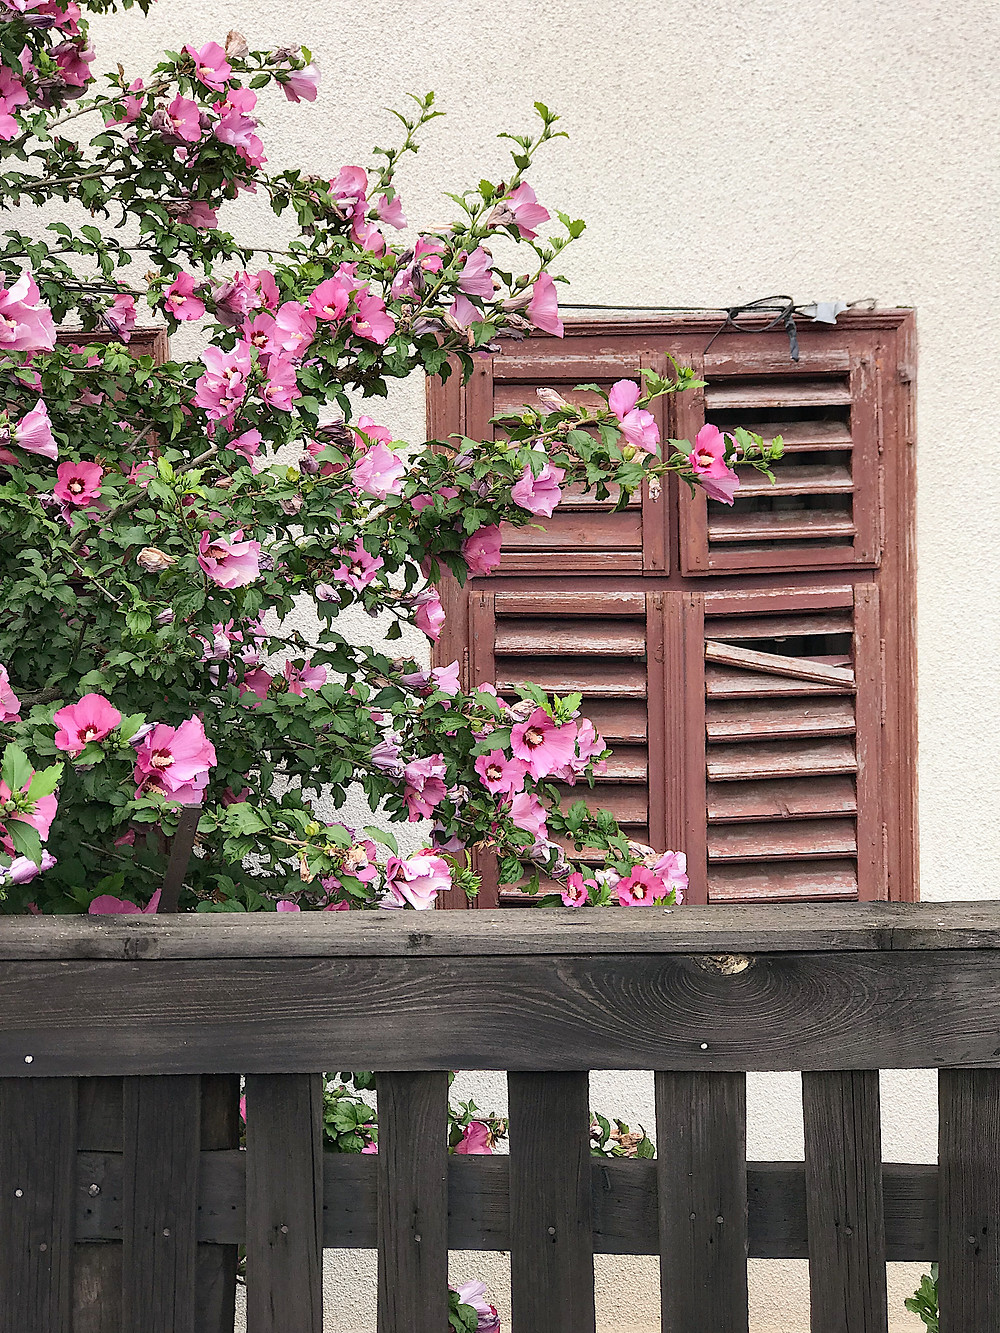 rustic fence, window and purple flowers